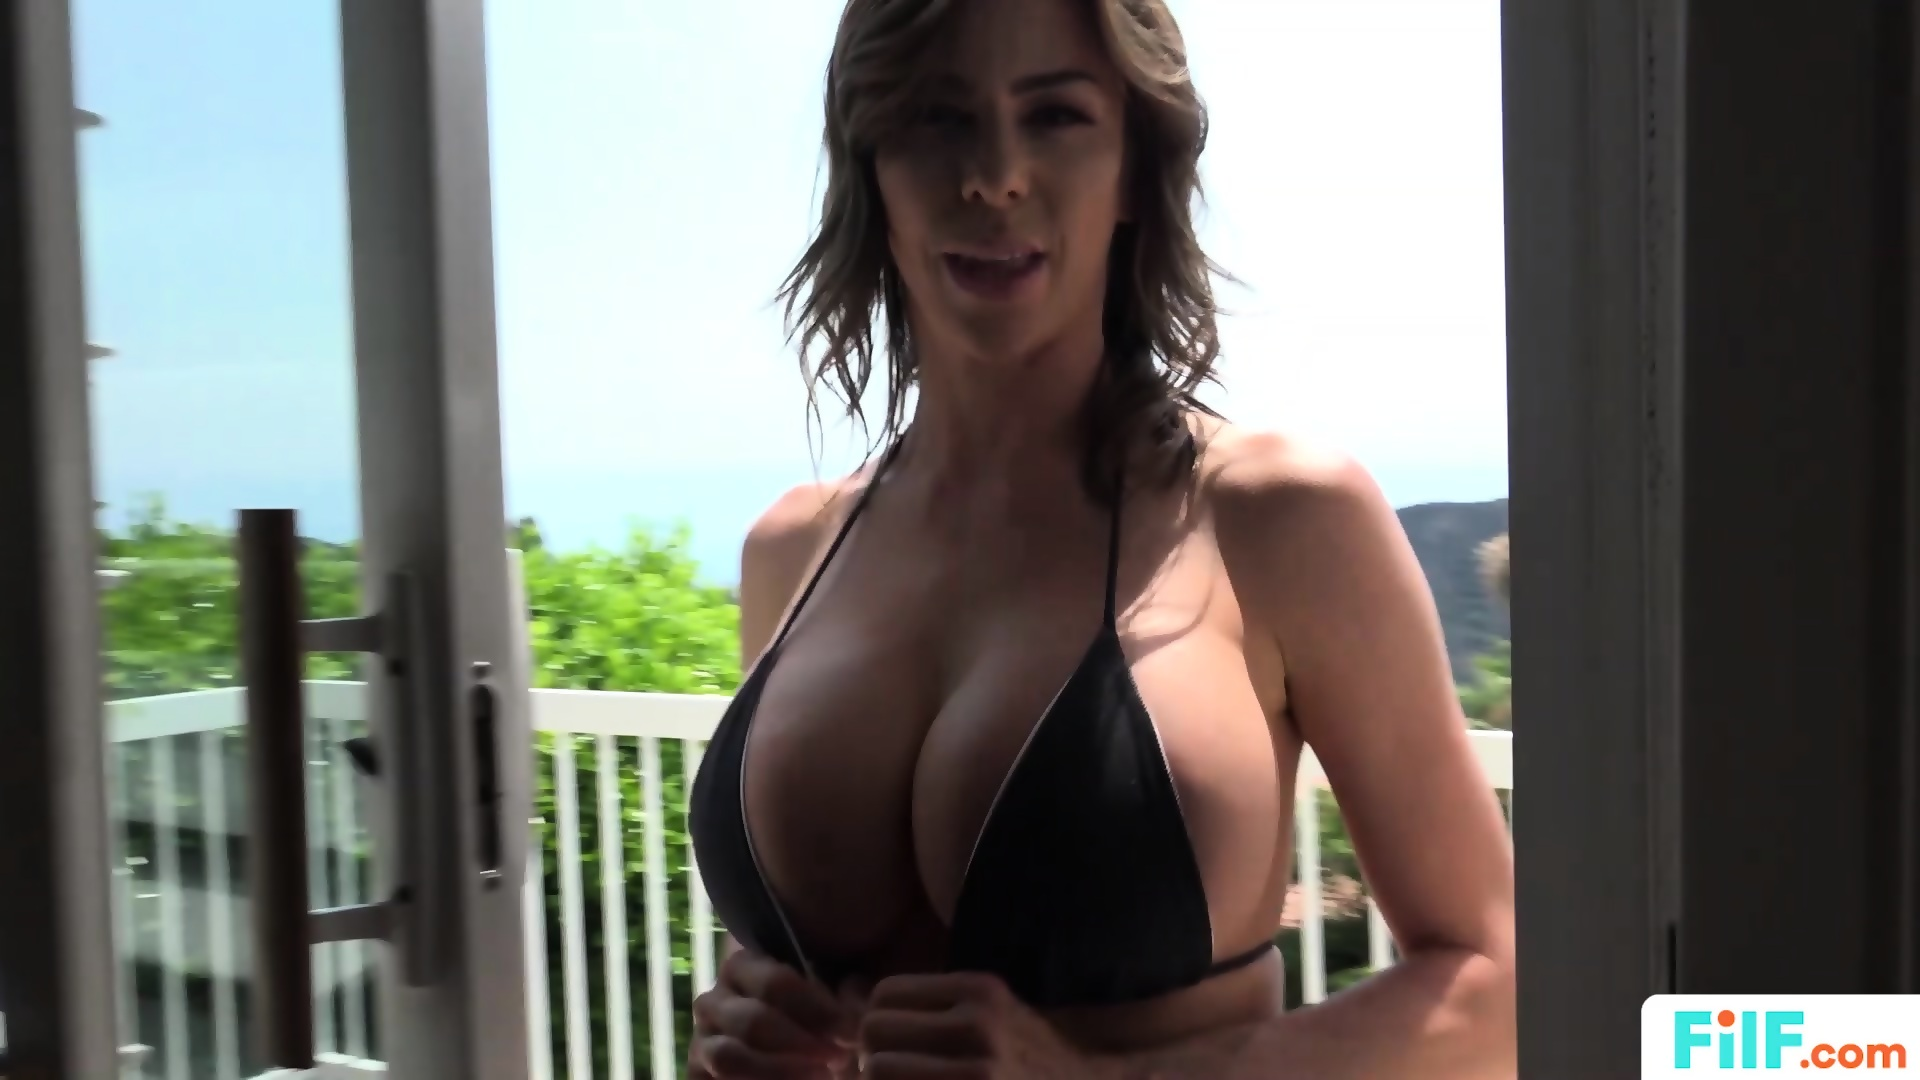 Stepmom Catches You Pov